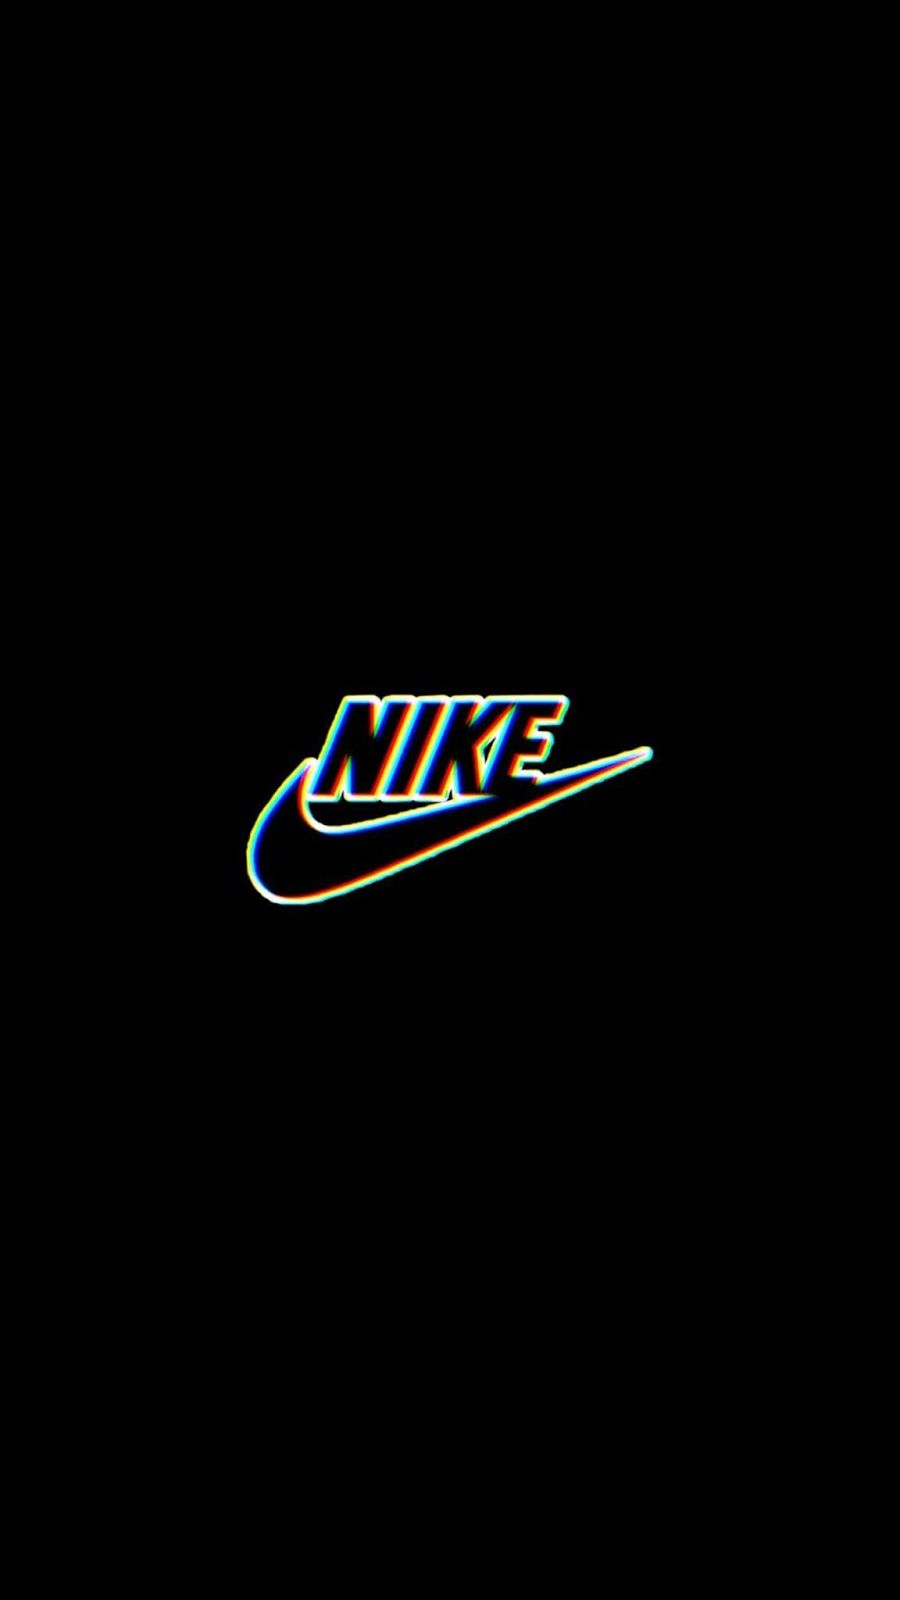 Nike Logo Hd Wallpapers For Iphone X Iphone Xr Iphone 11 Etc Glitch Wallpaper Edgy Wallpaper Nike Logo Wallpapers